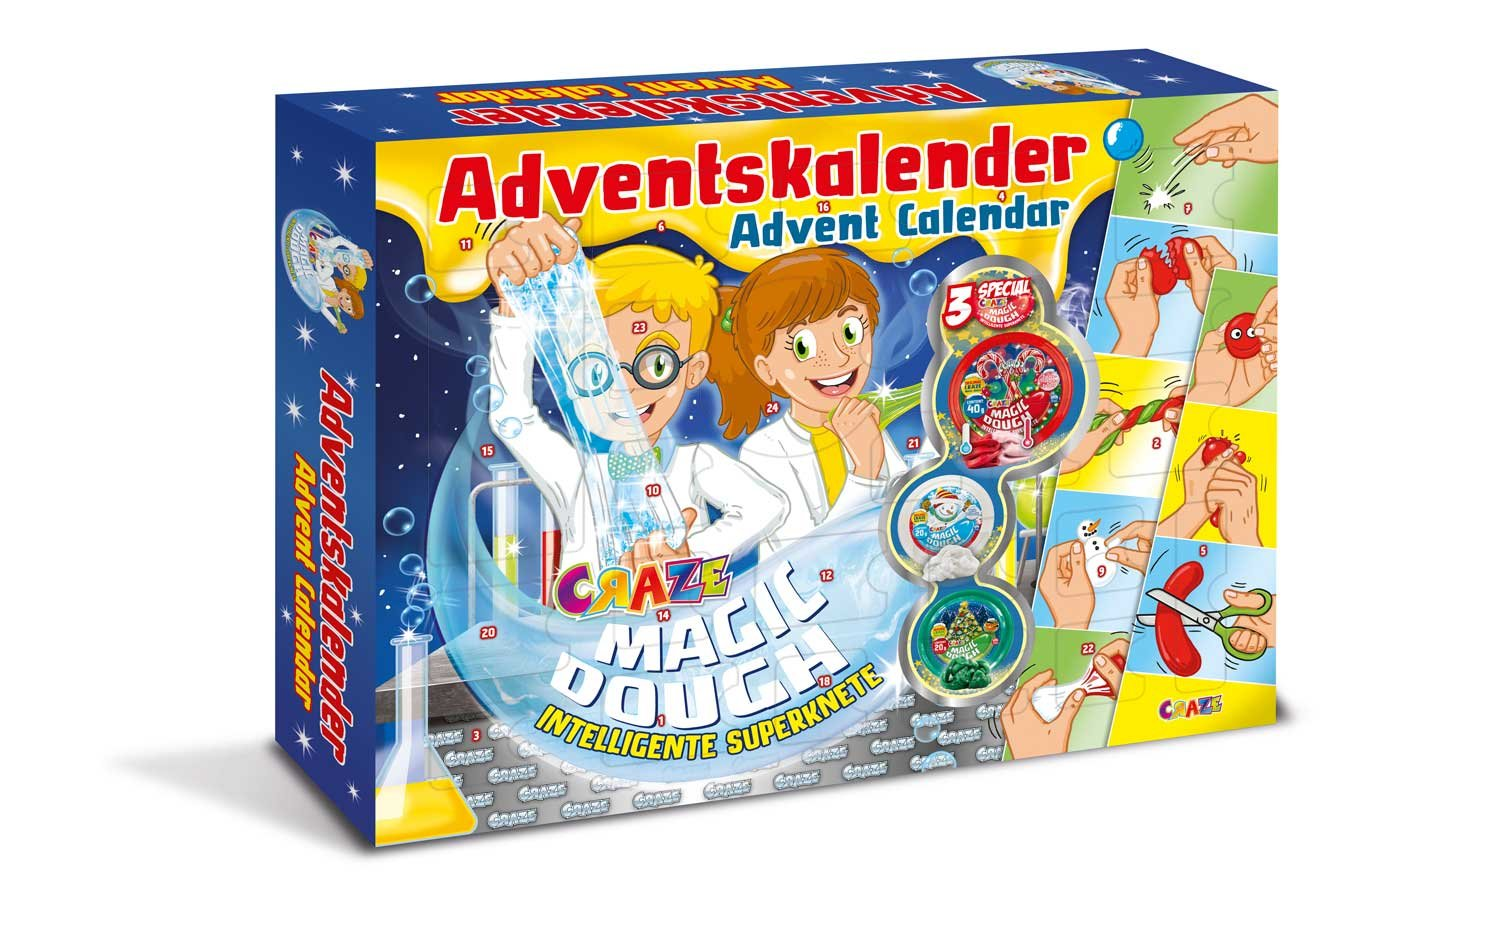 Craze 15049 - Adventskalender Magic Dough - Intelligente Superknete, BPA- und glutenfrei CRAZE GmbH 54049